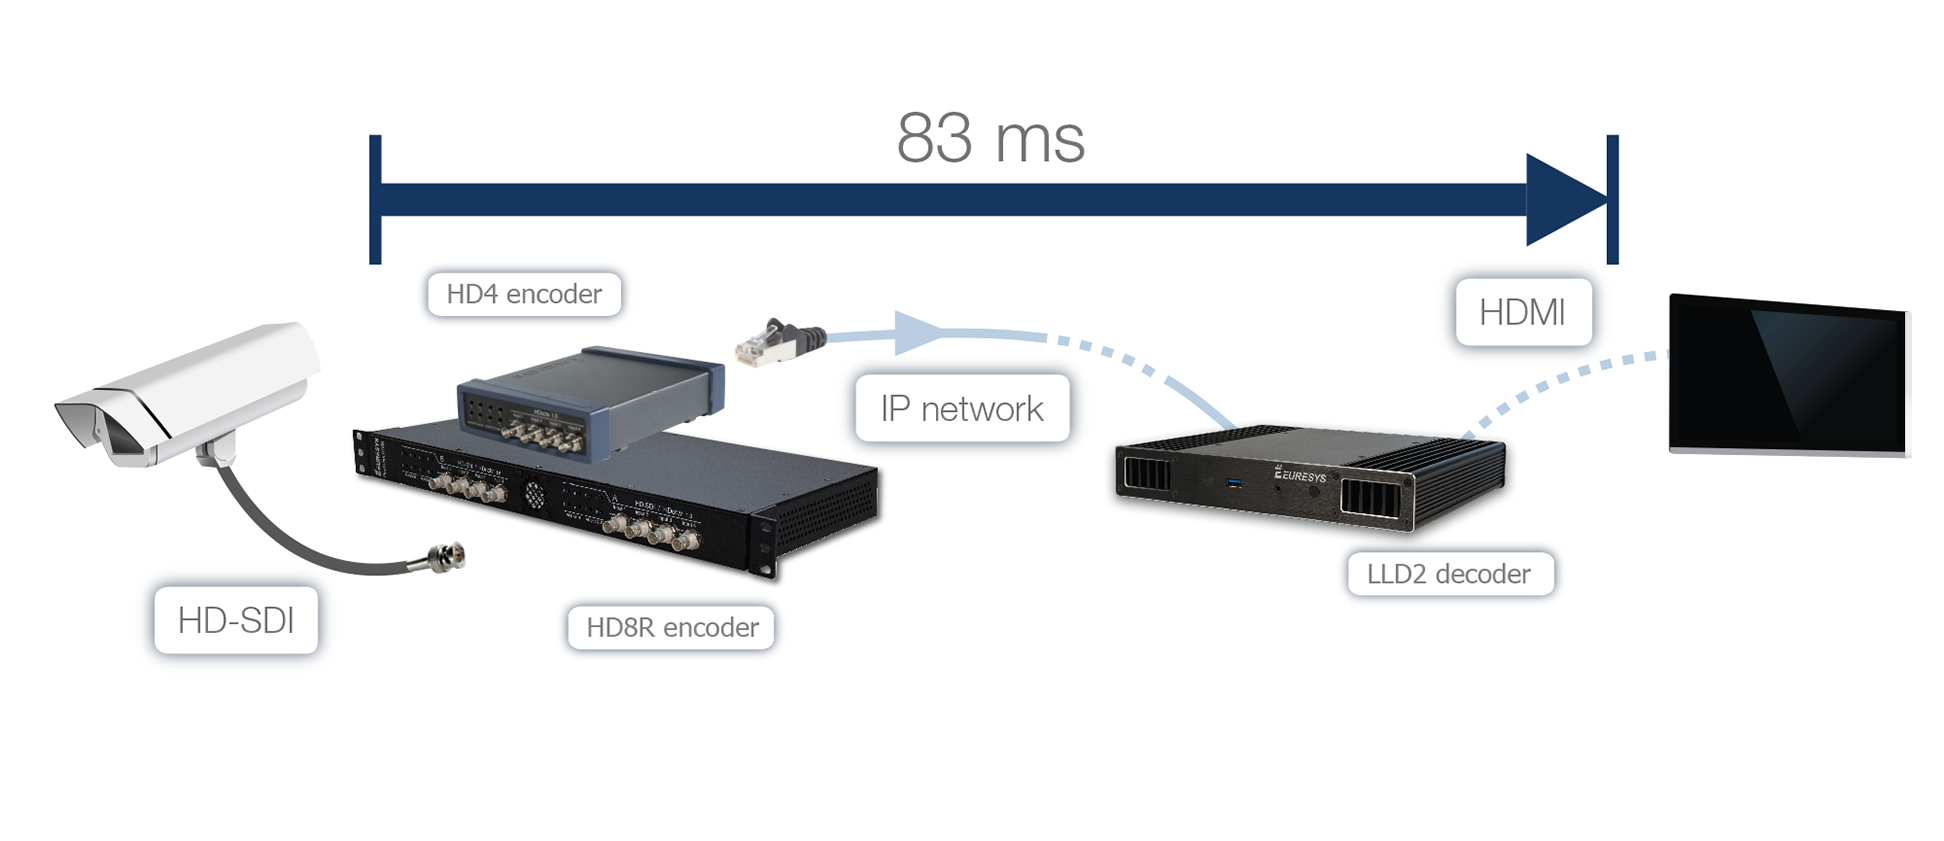 83ms wire-to-wire latency between Picolo.net encoder and Picolo.net LLD2 decoder